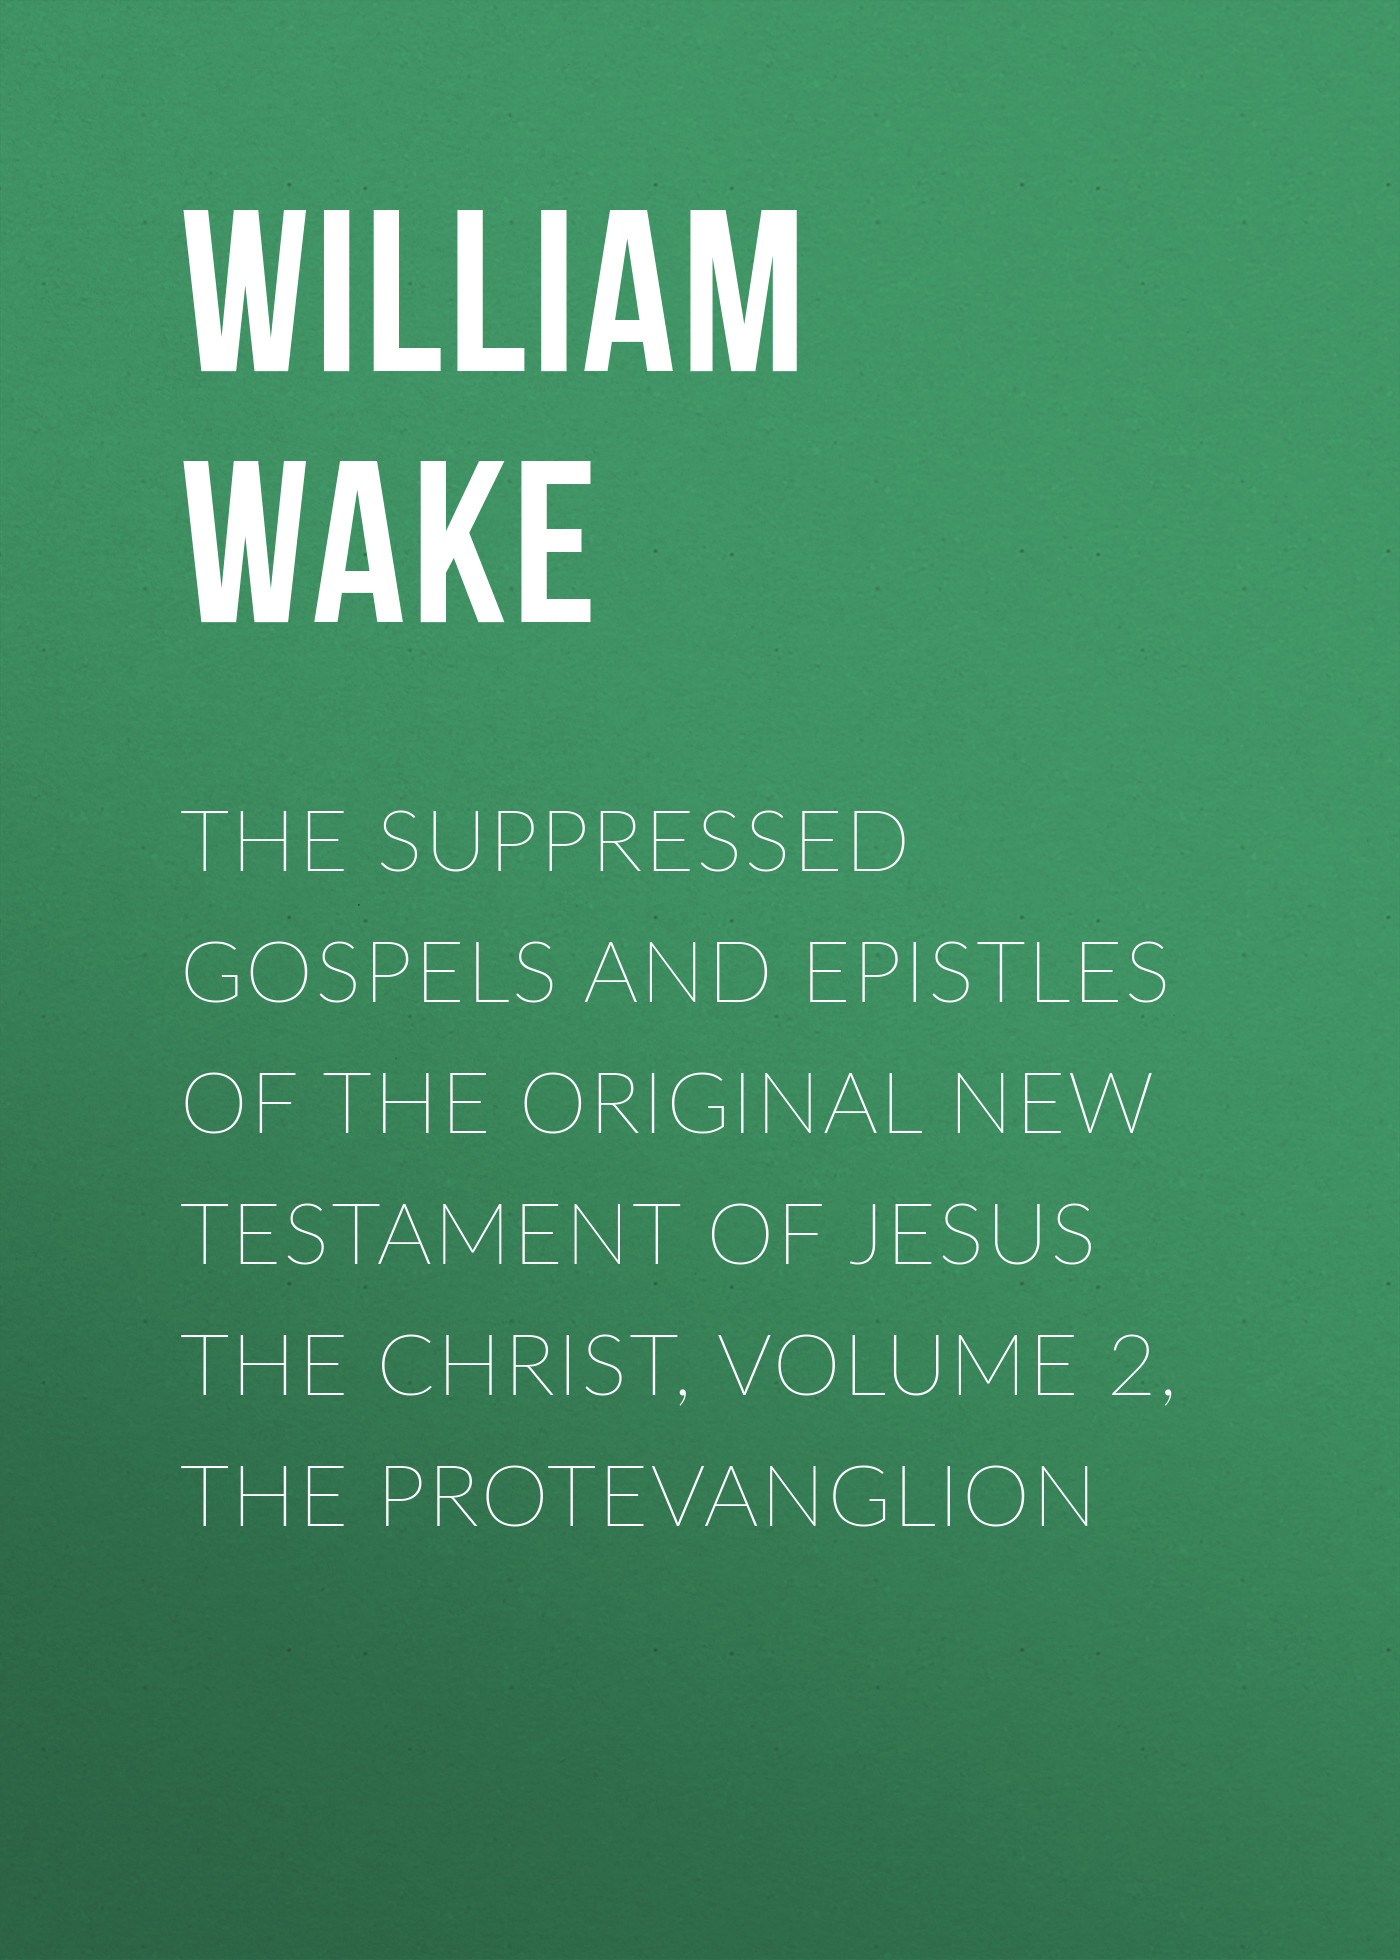 William Wake The suppressed Gospels and Epistles of the original New Testament of Jesus the Christ, Volume 2, the Protevanglion frey j the final testament